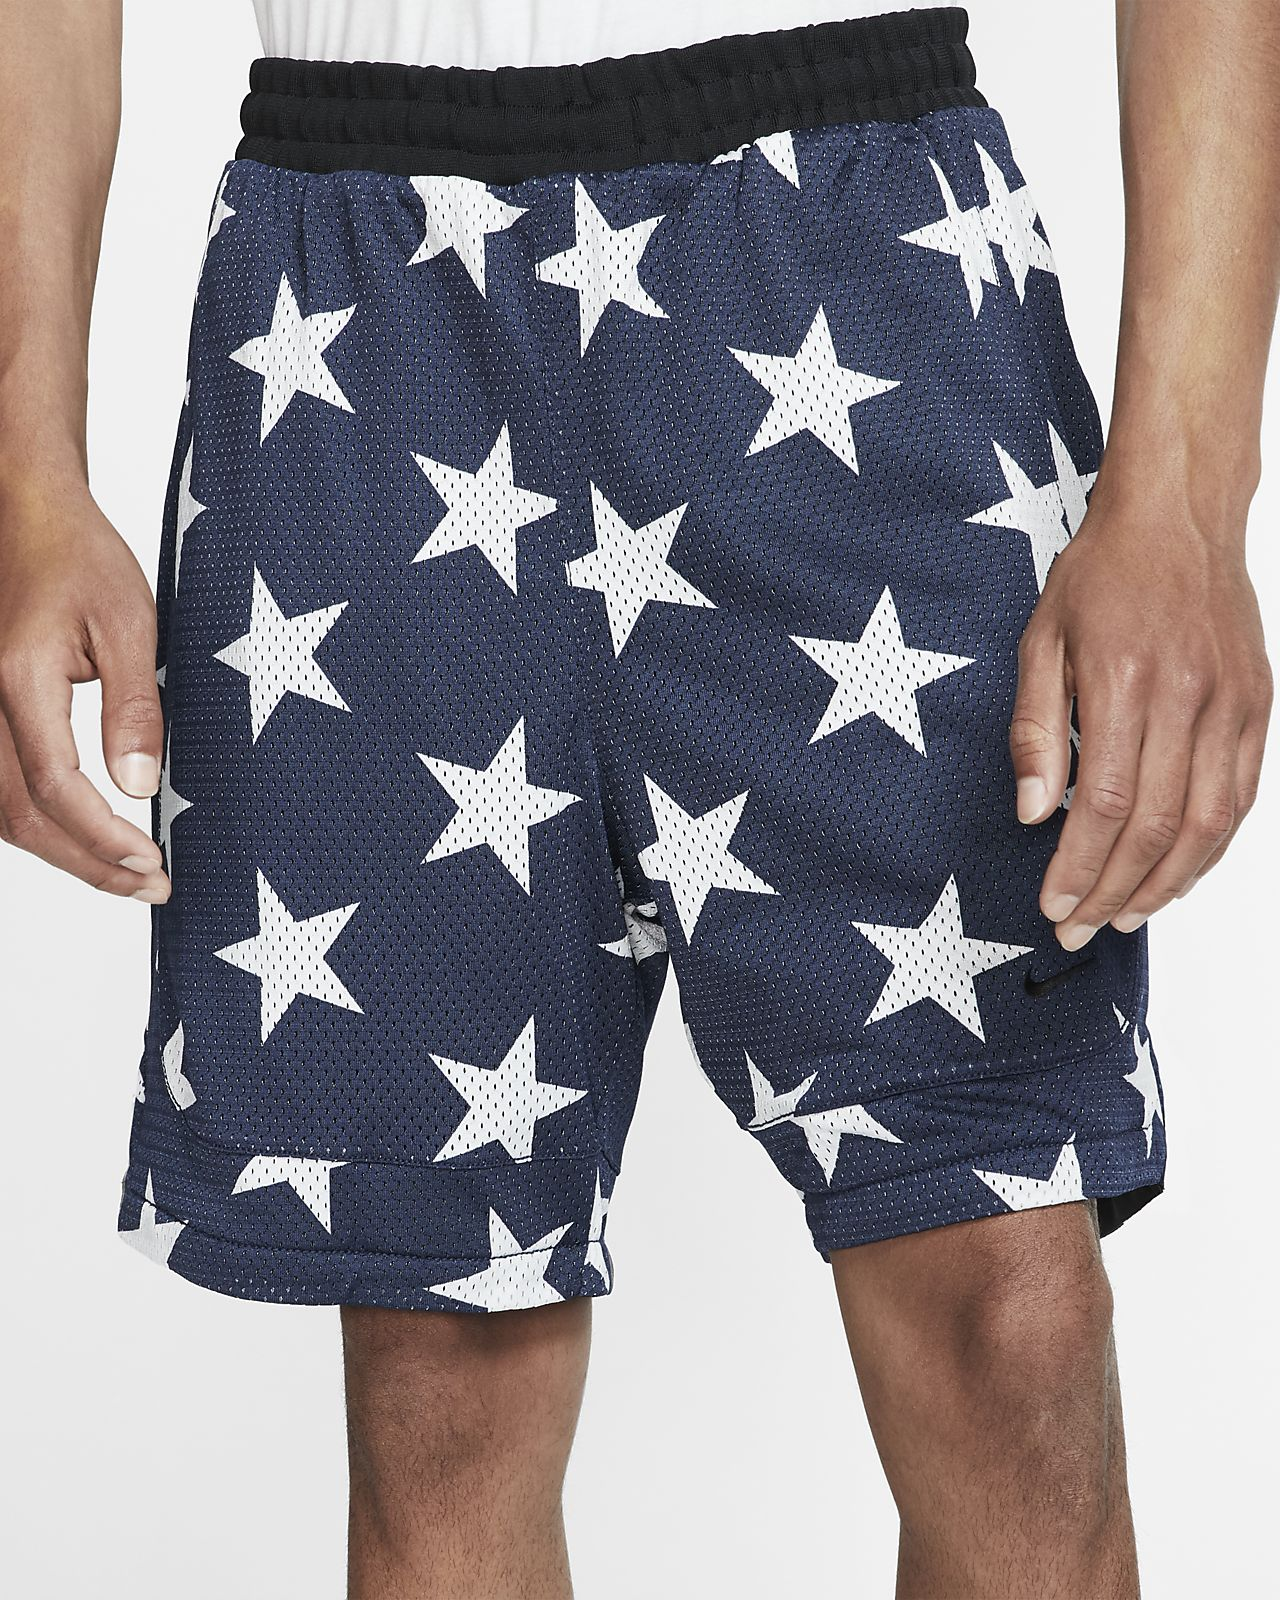 NikeLab Collection Men's Reversible Shorts